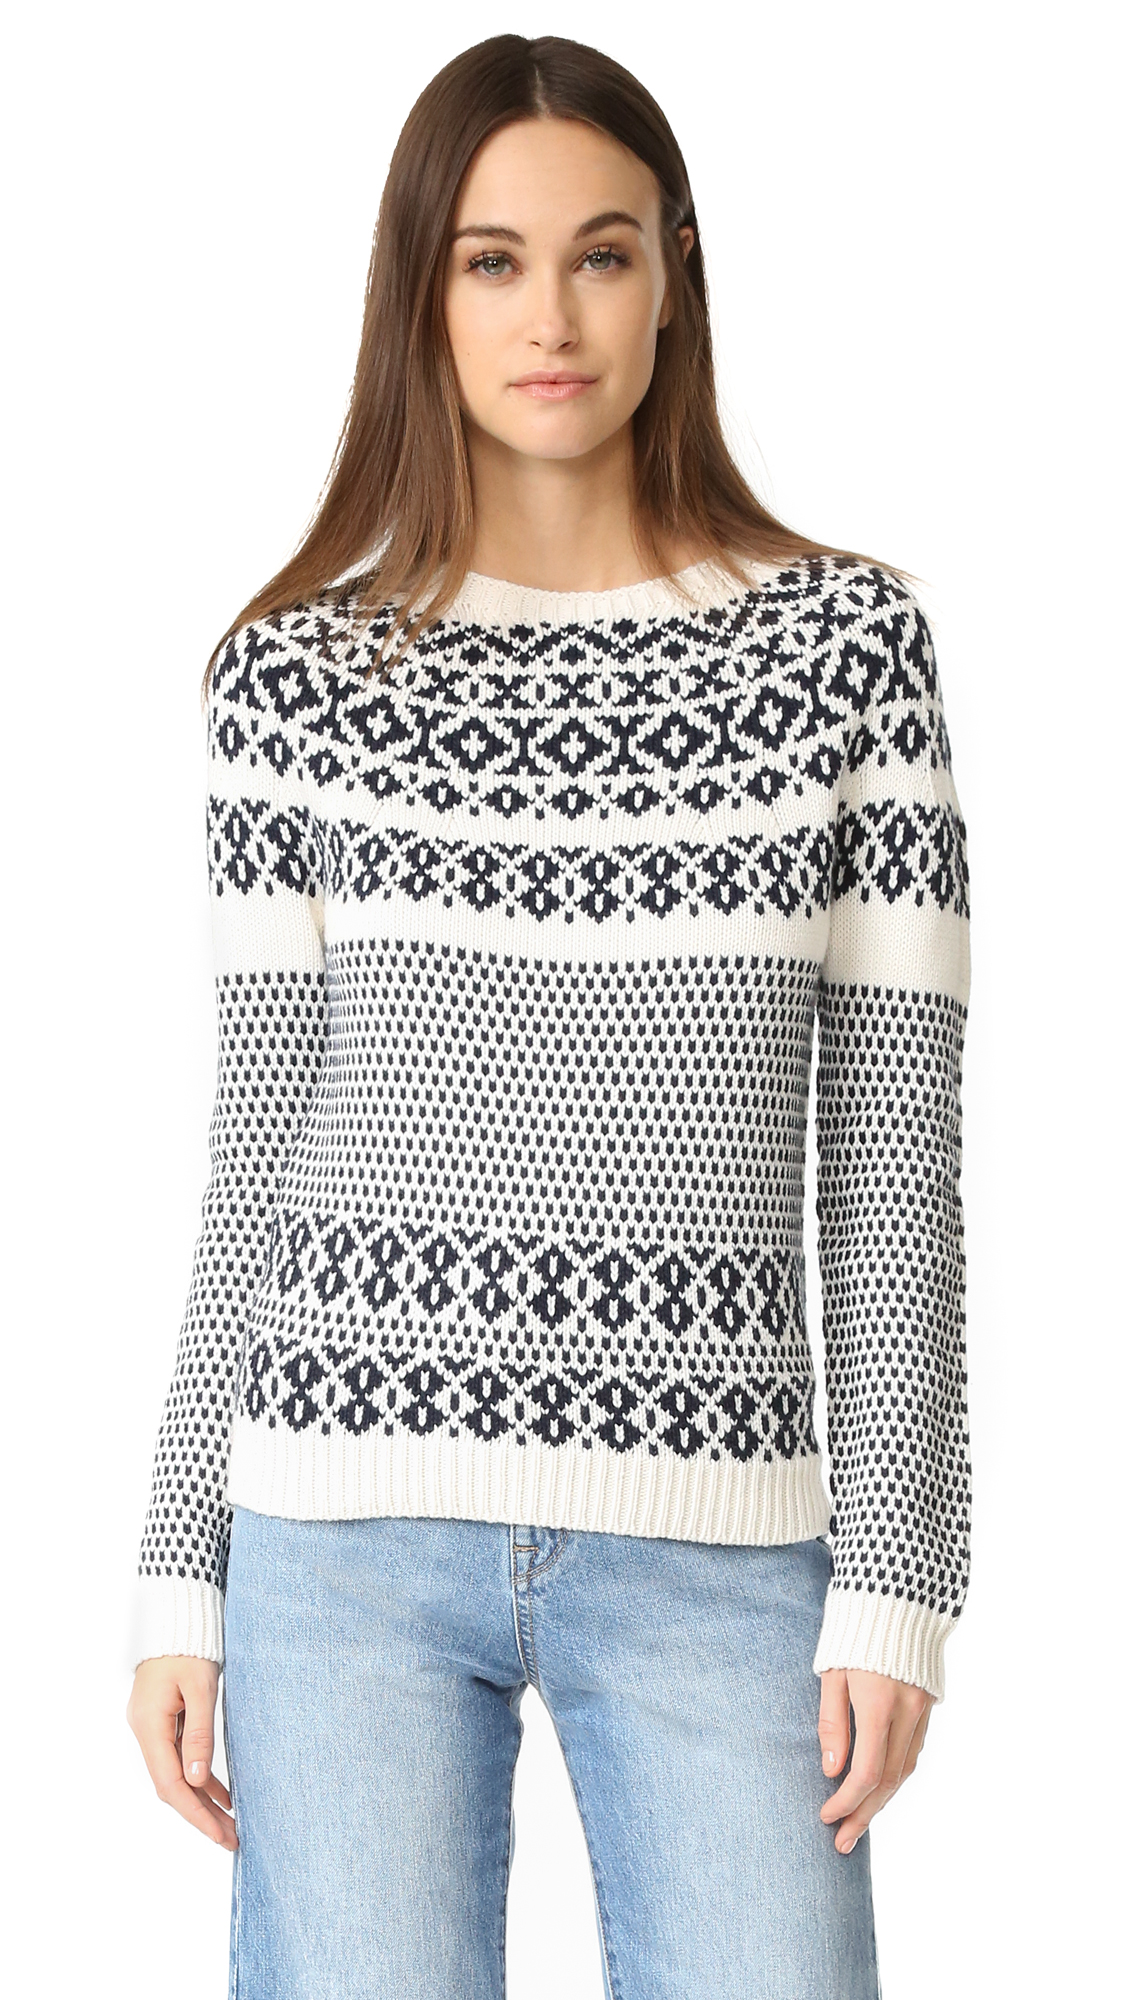 A two tone A.P.C. fair isle sweater, constructed with dolman sleeves for a relaxed fit. Ribbed edges. Fabric: Fair isle knit. 52% merino wool/48% cotton. Hand wash or dry clean. Made in Italy. Measurements Length: 24.5